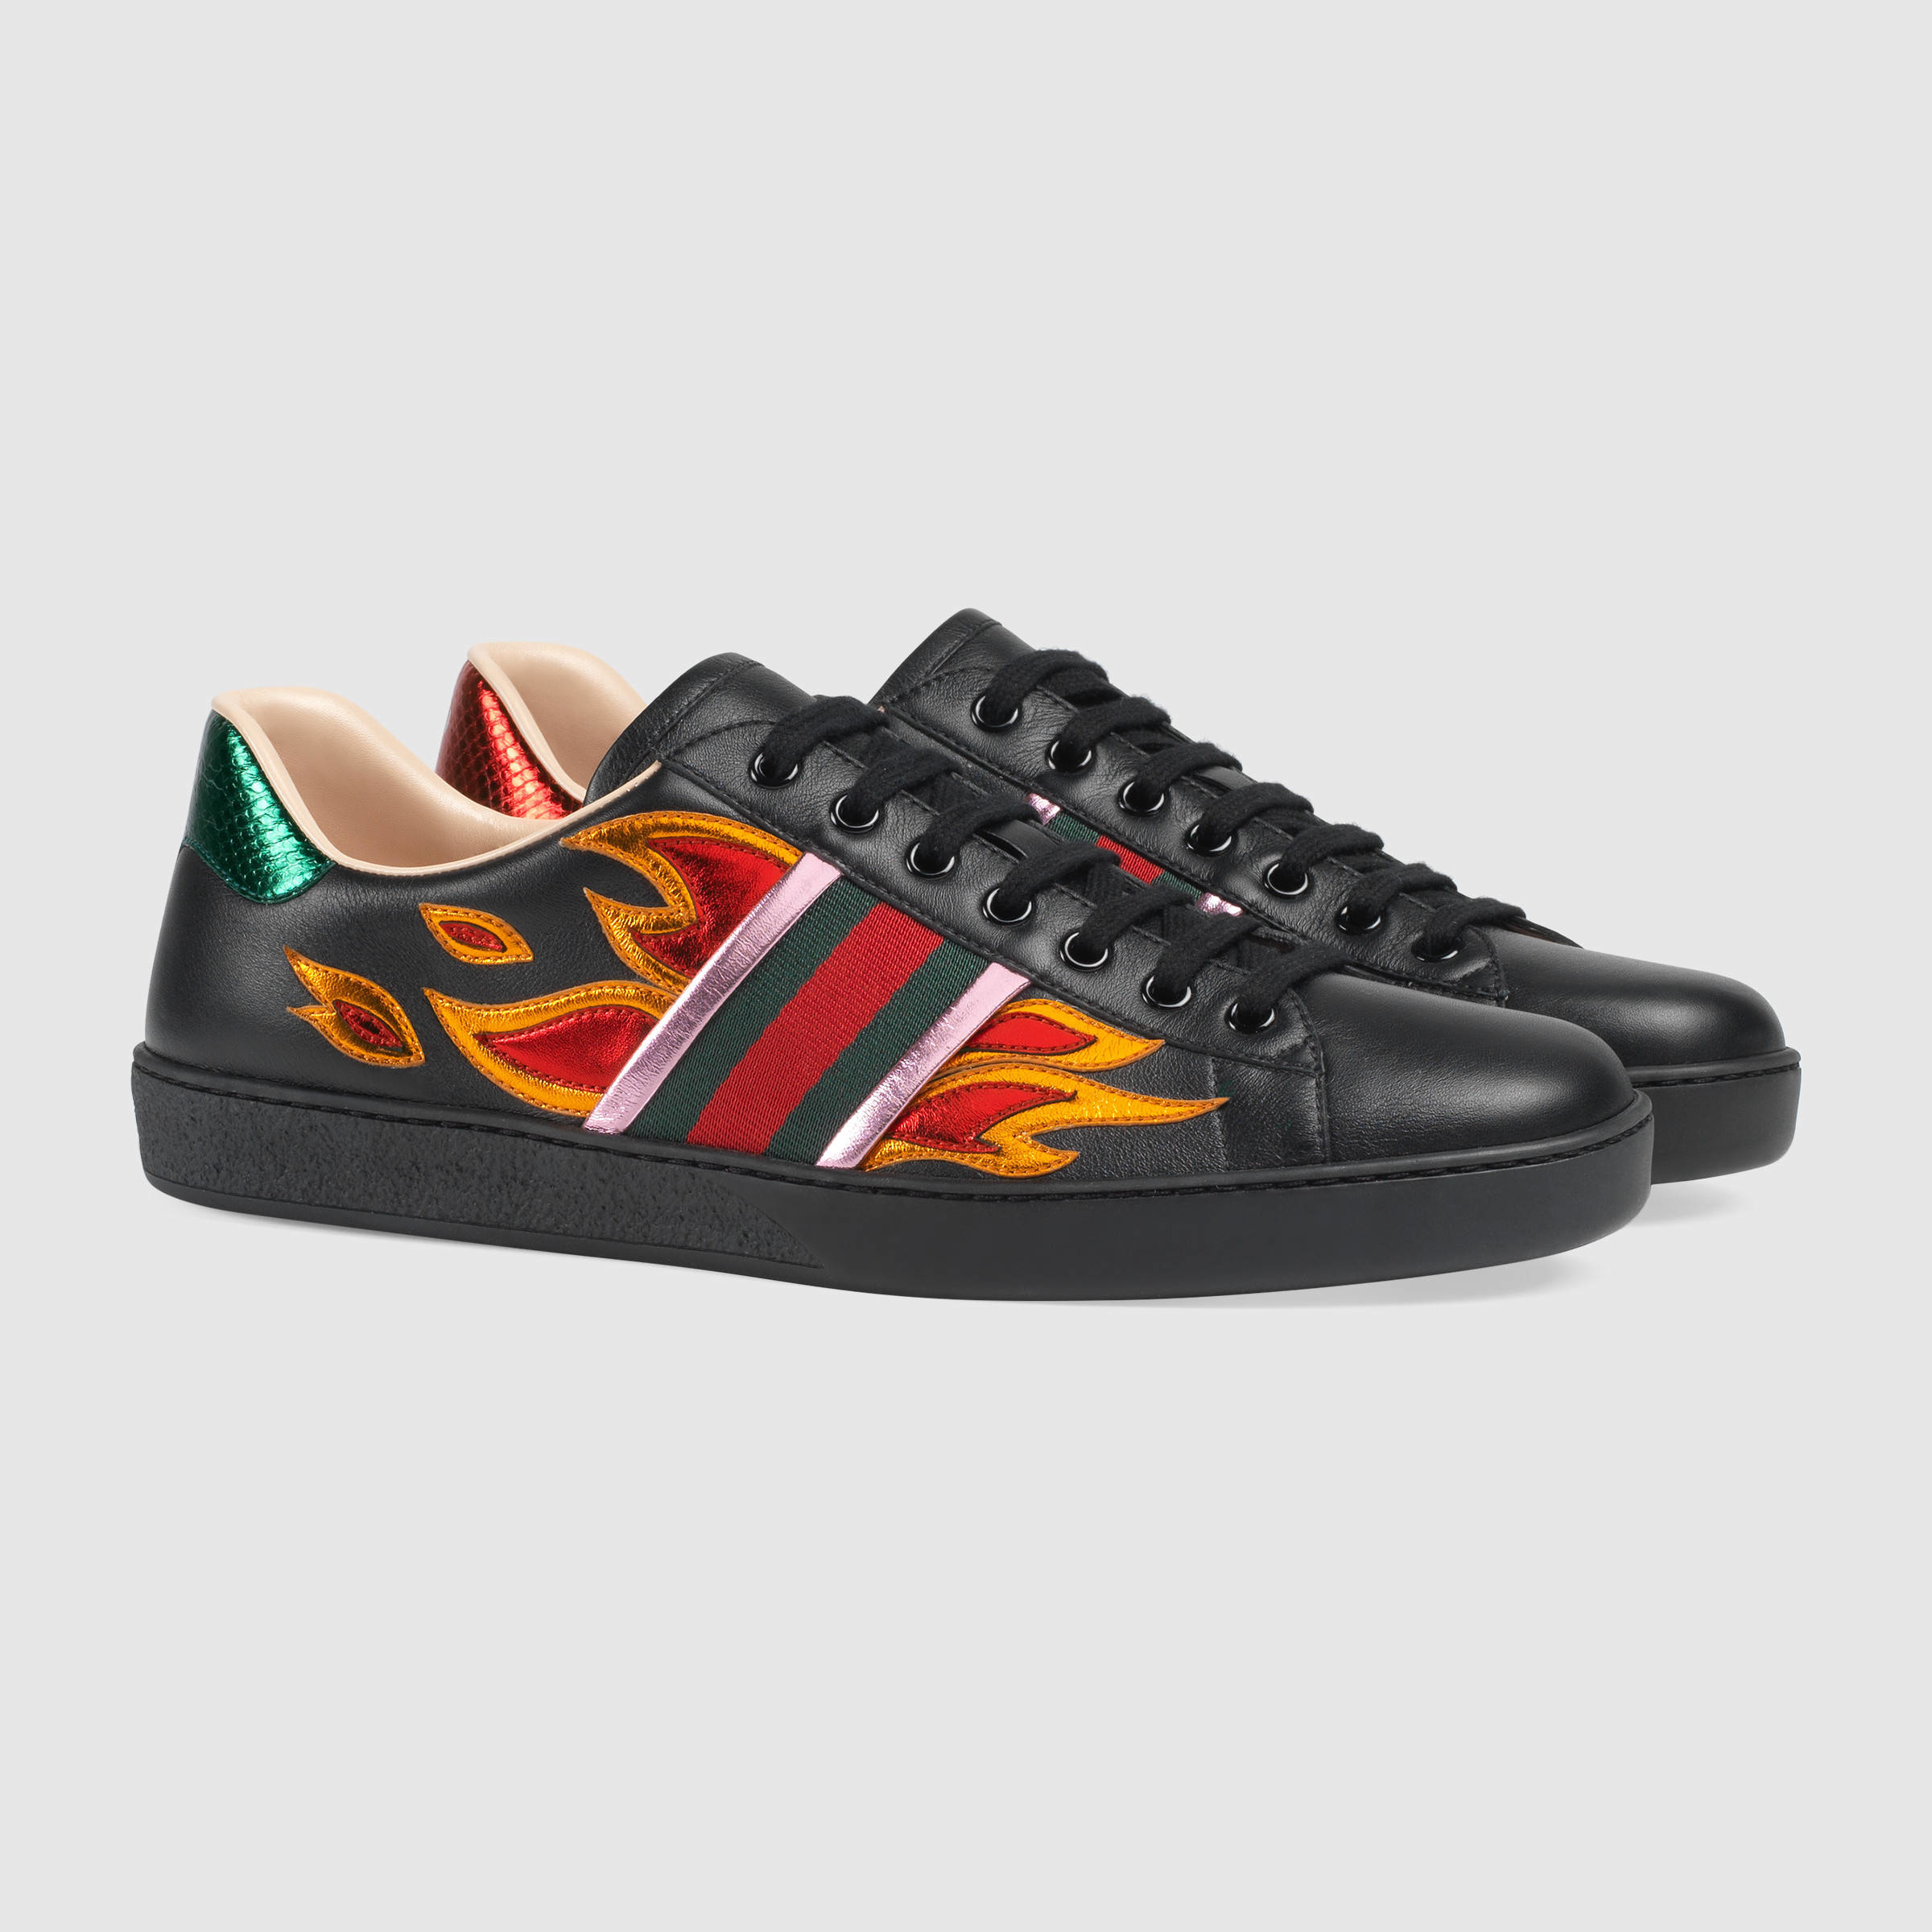 6c0bf30ffc9 Lyst - Gucci Ace Low-top Sneaker With Flames for Men